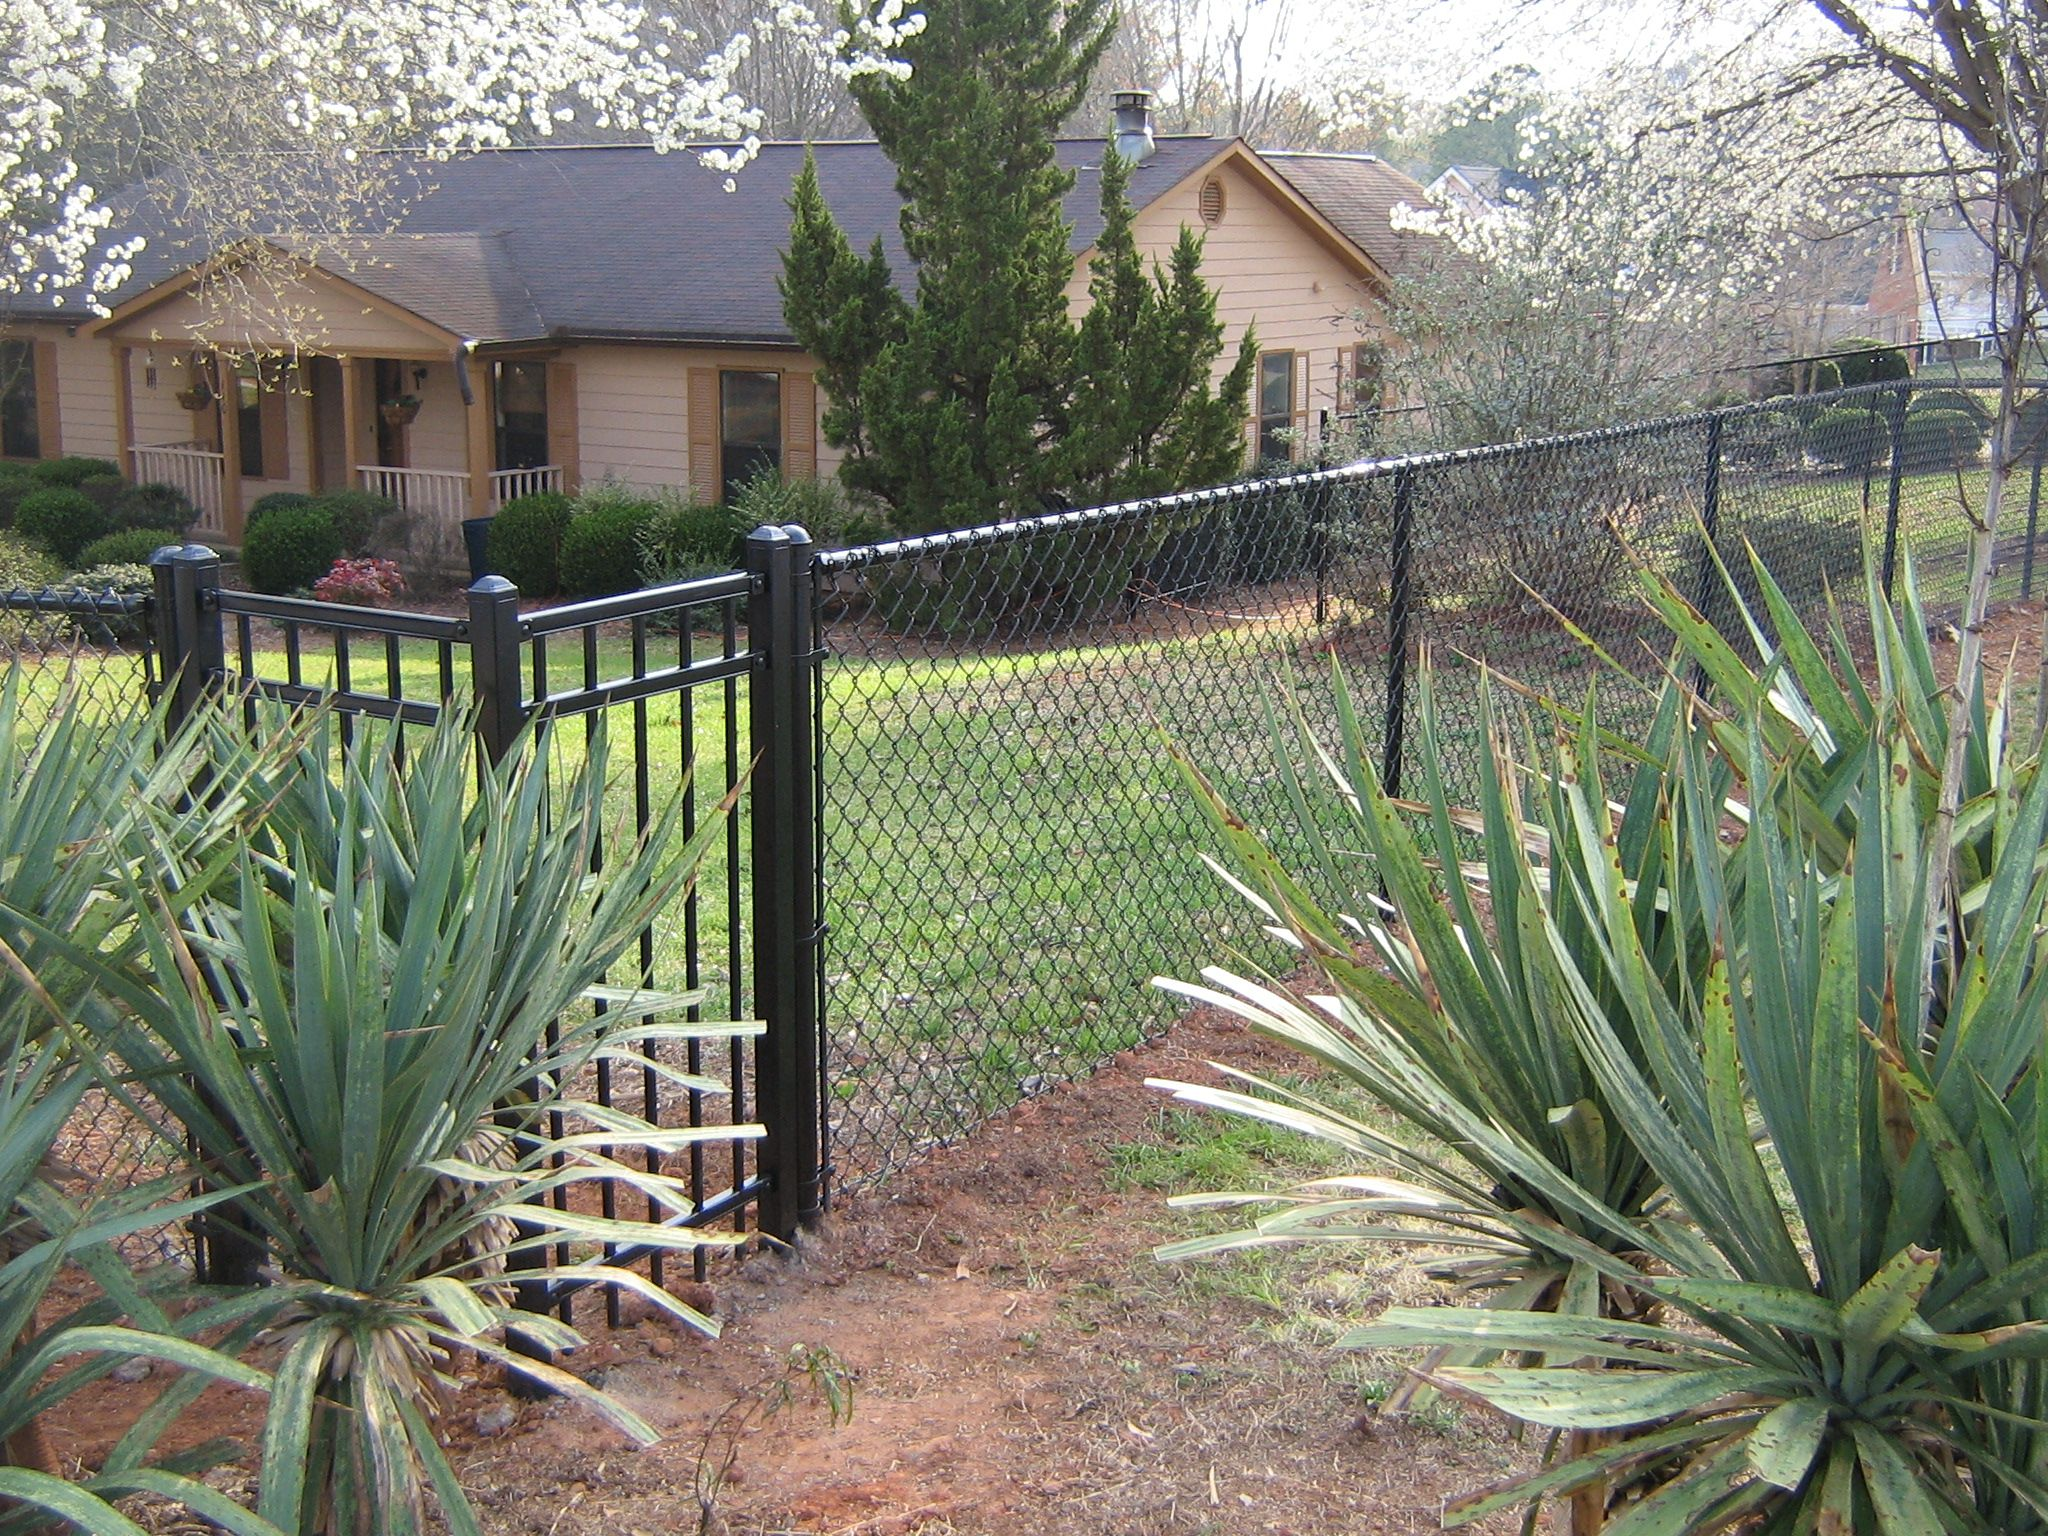 Residential Chain Link | Chain Link Fences | McDonough GA Fence Co ...